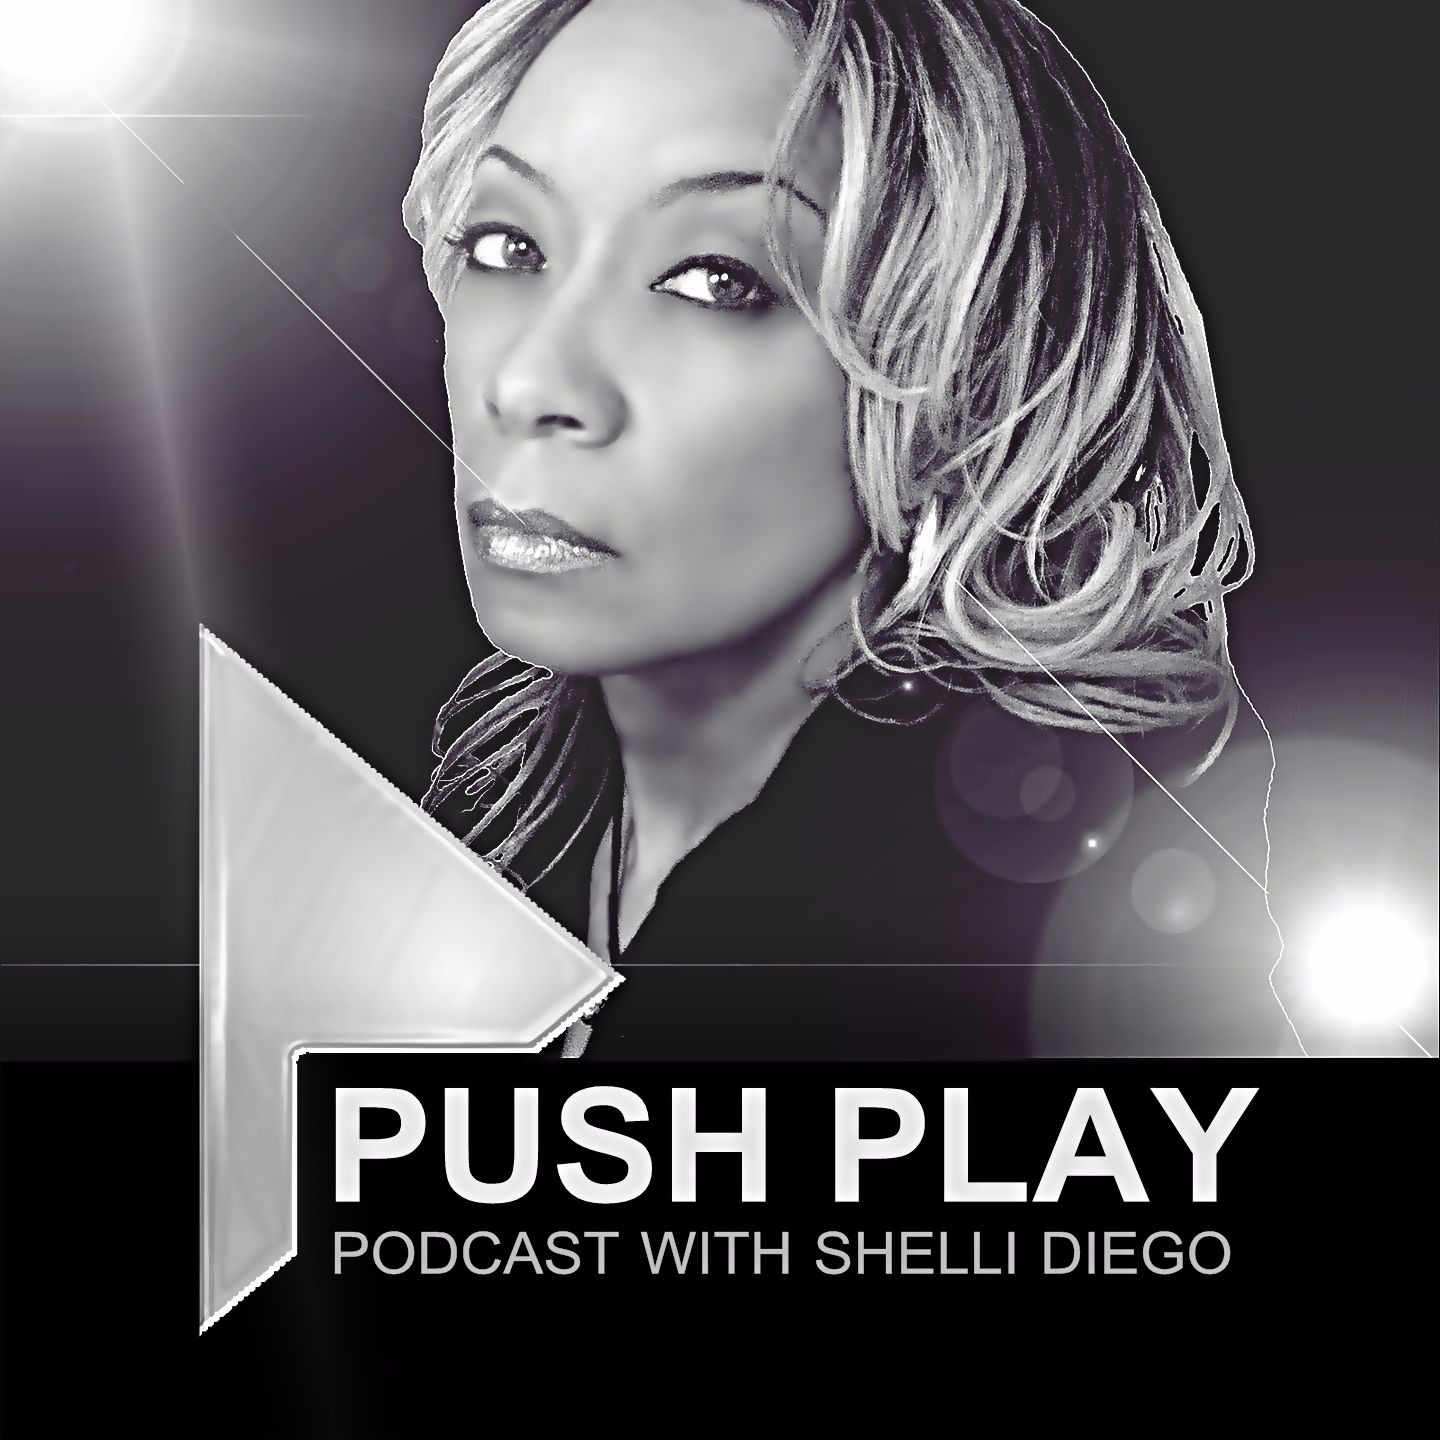 Push Play Podcast with Shelli Diego